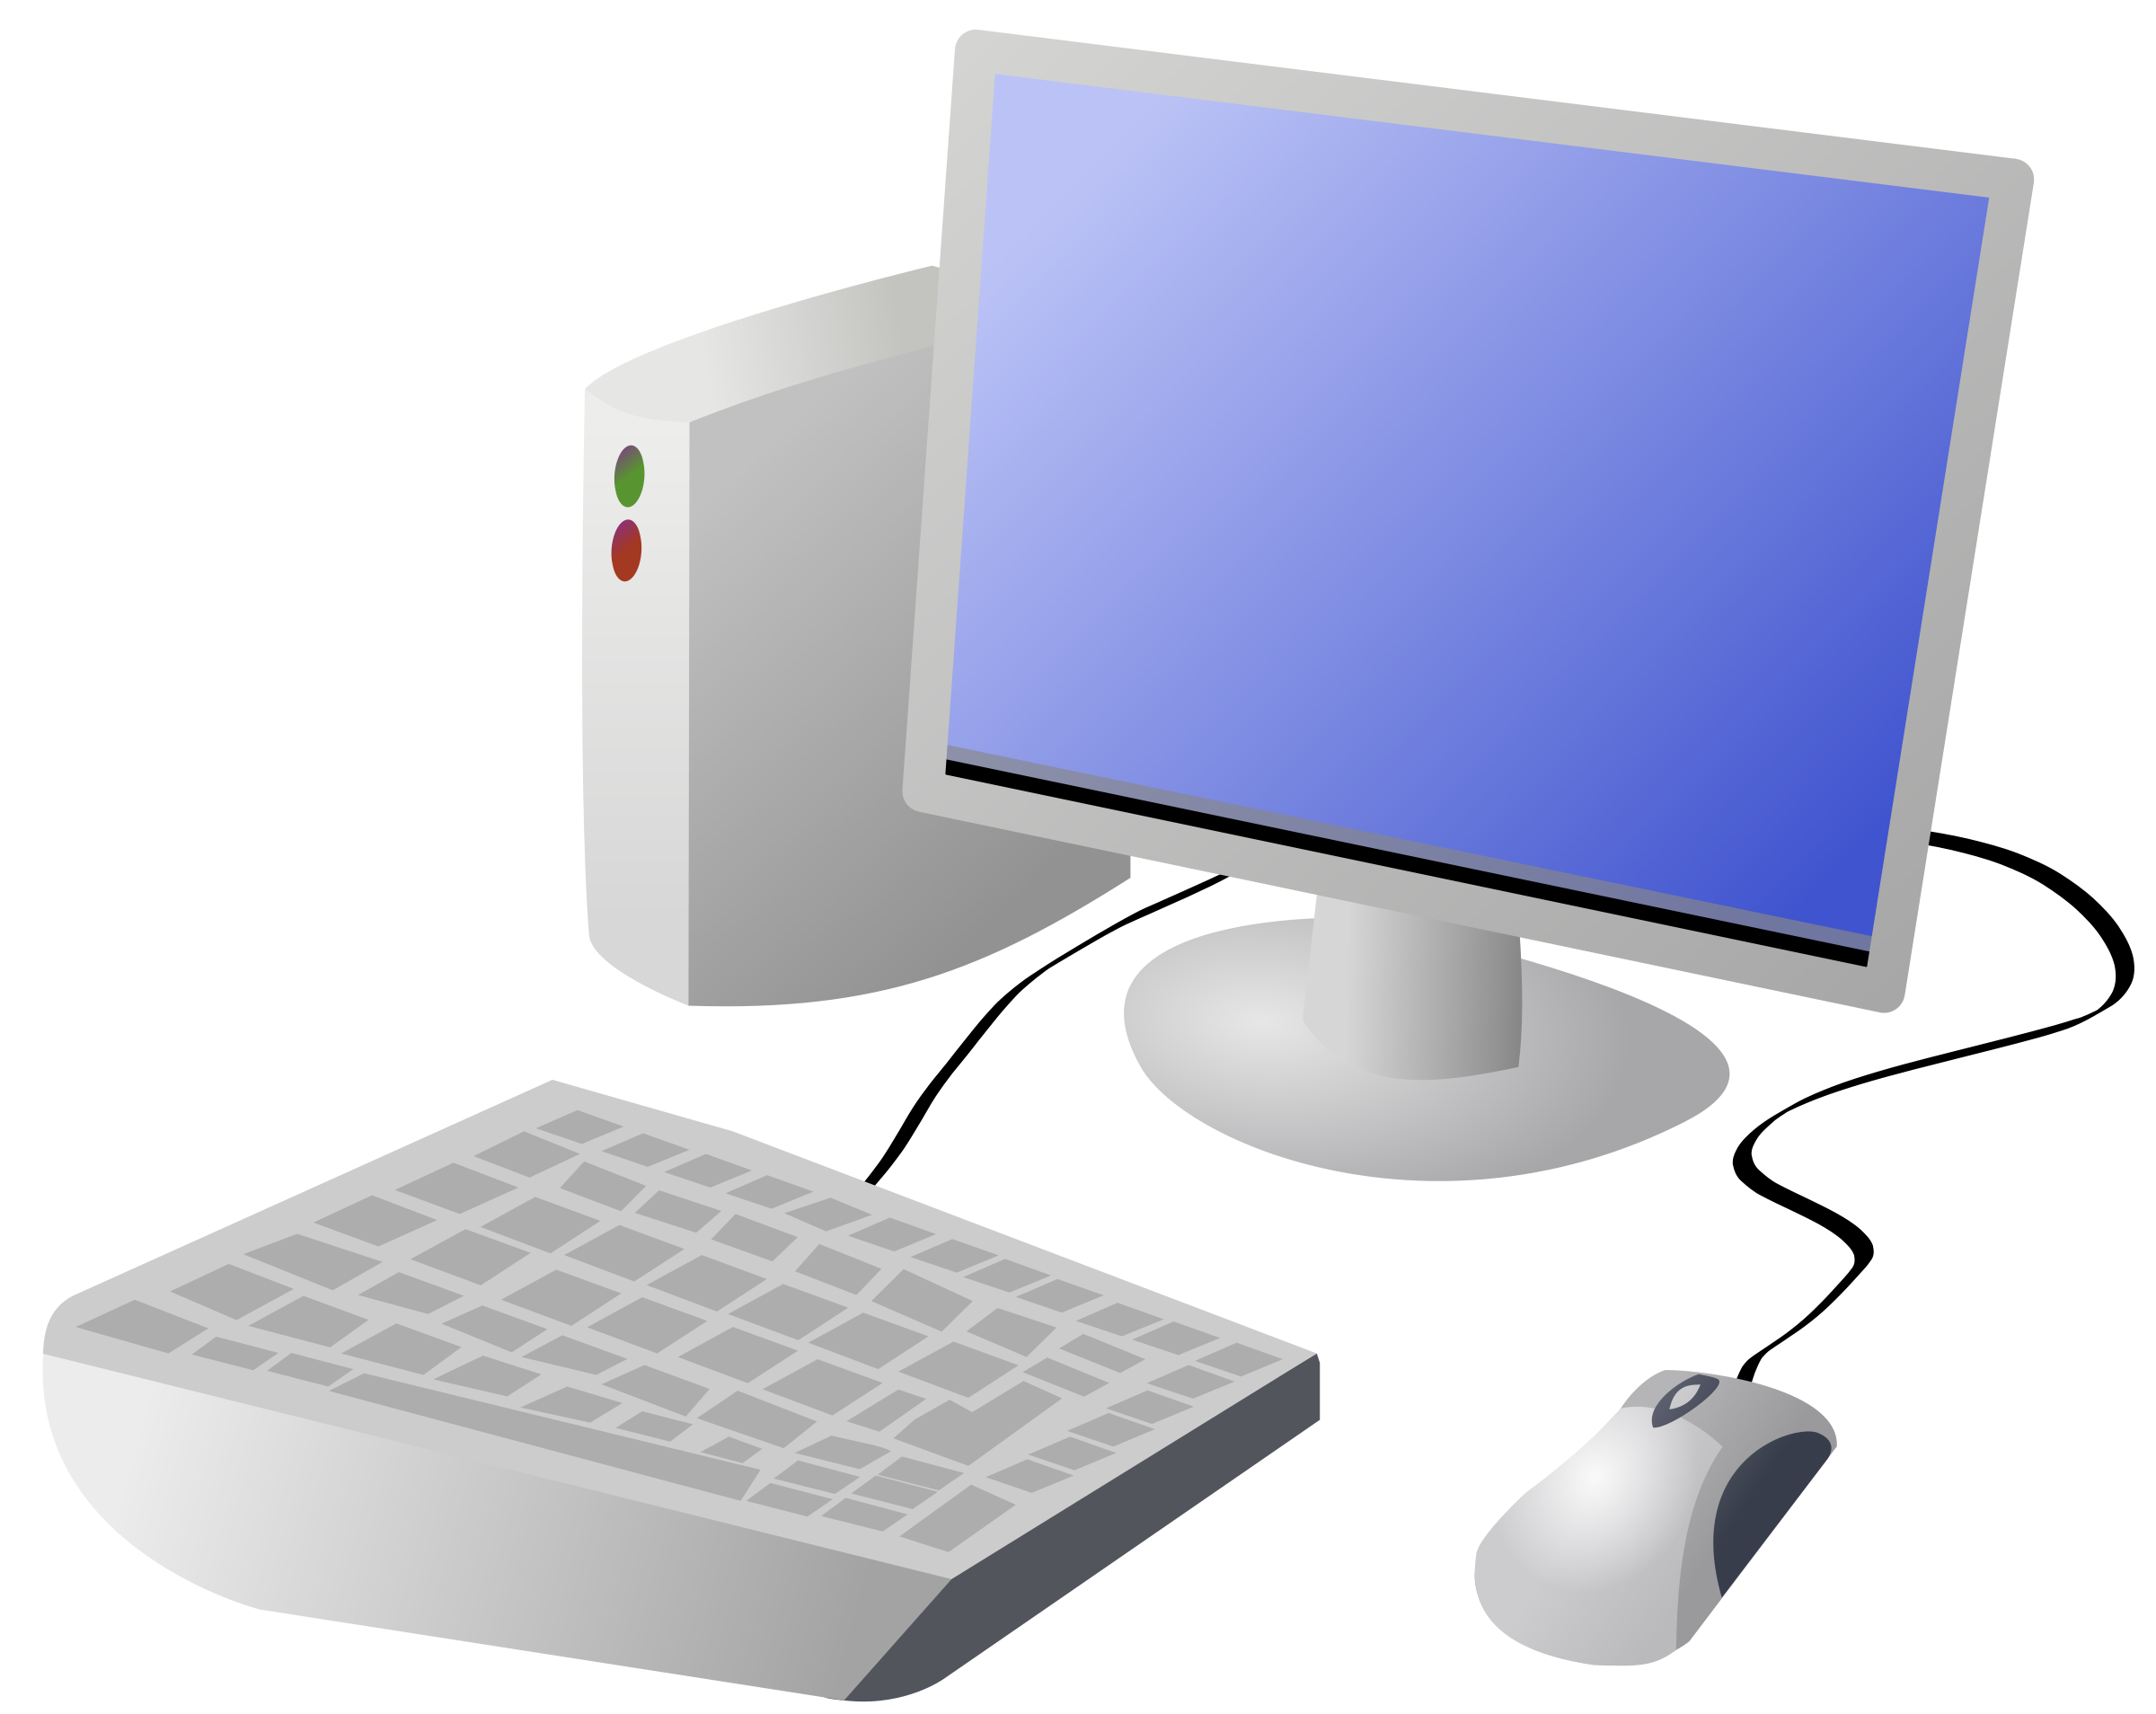 Free Cartoon Computer Images, Download Free Clip Art, Free.